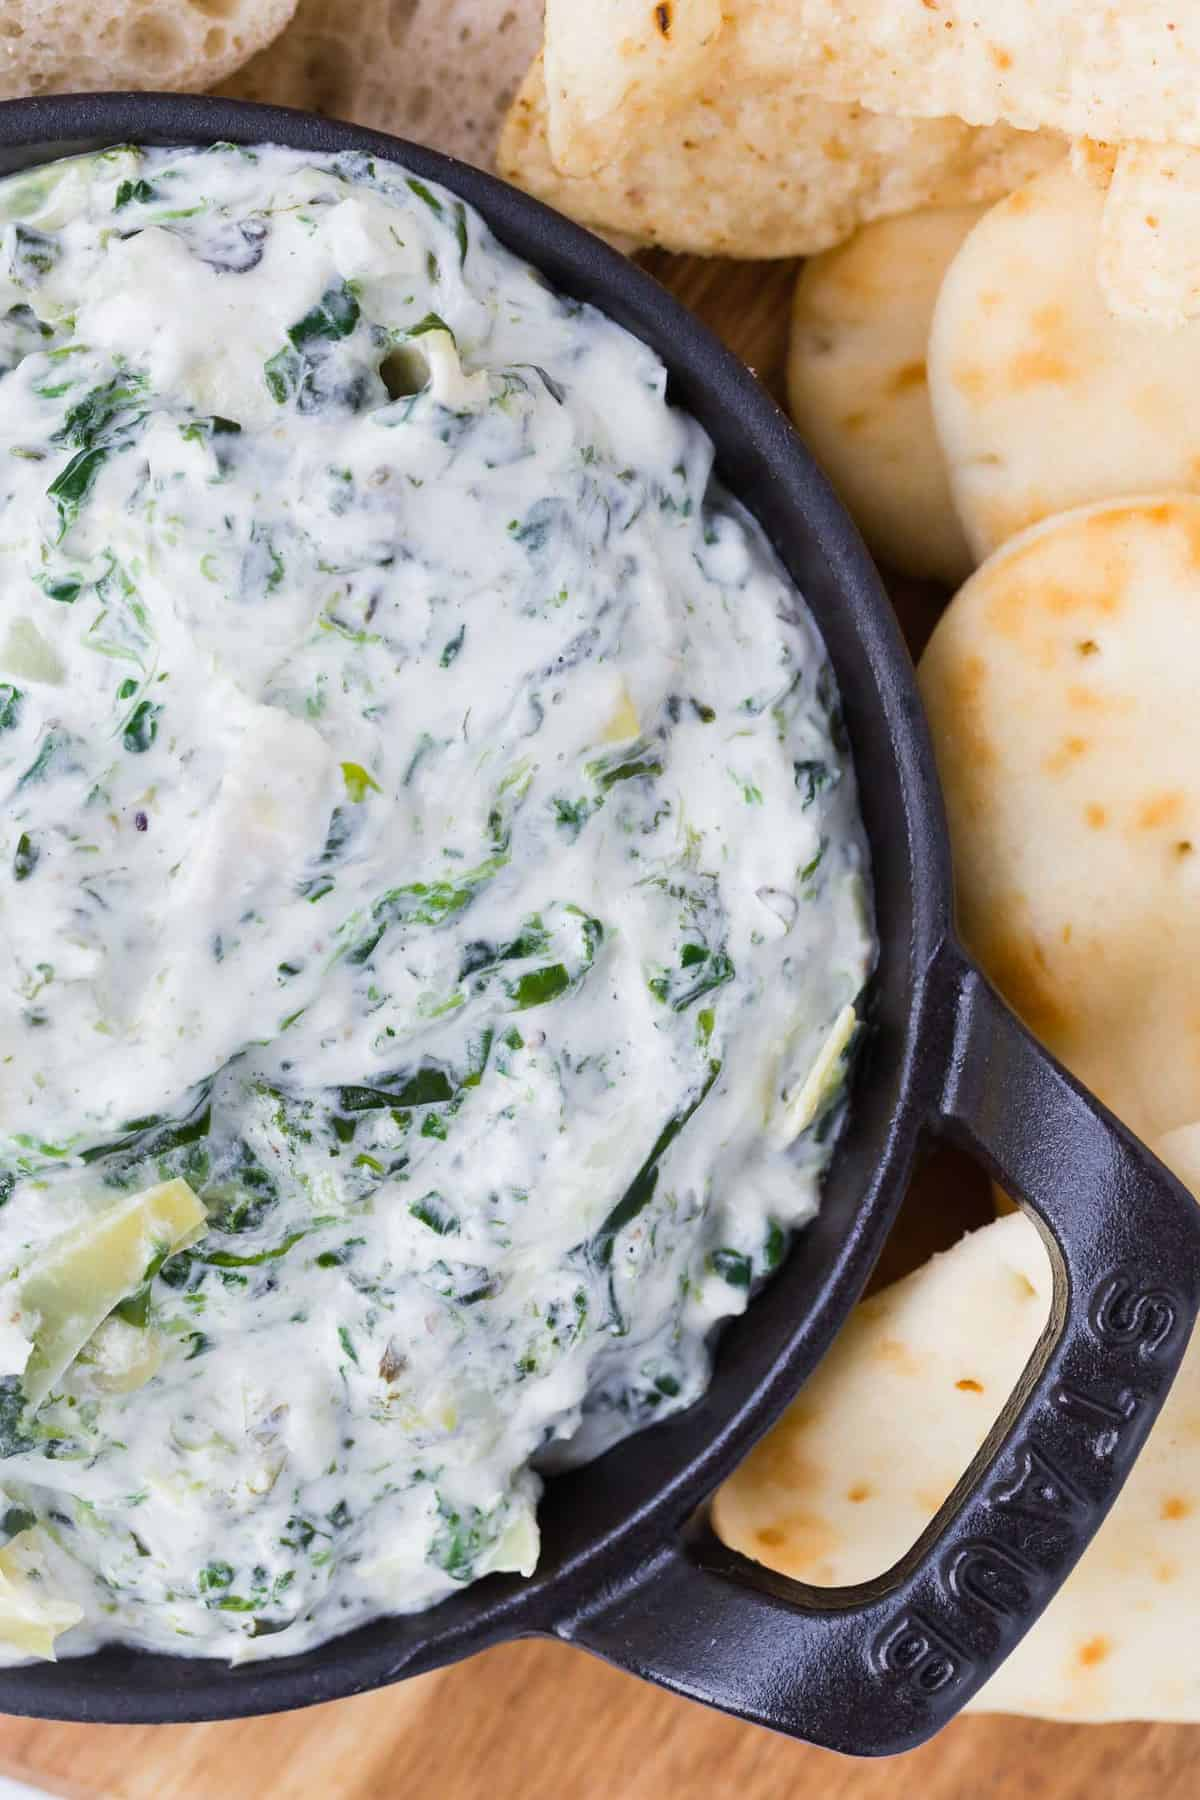 Close up of a creamy dip with spinach and artichoke hearts.